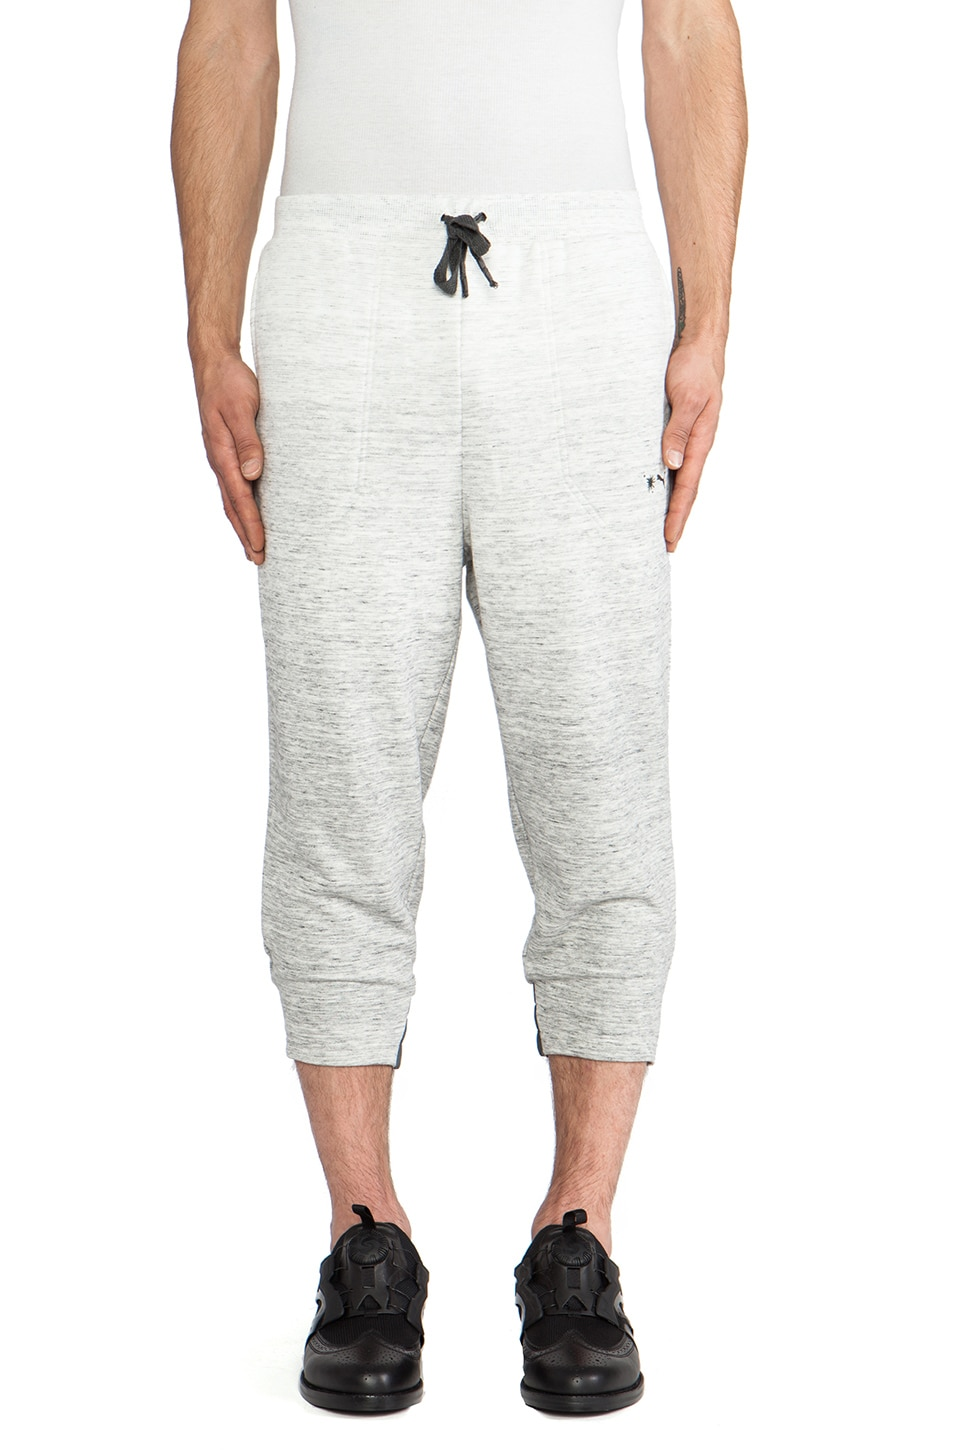 Puma by Mihara 3/4 Sweat Pants in Medium Gray Heather